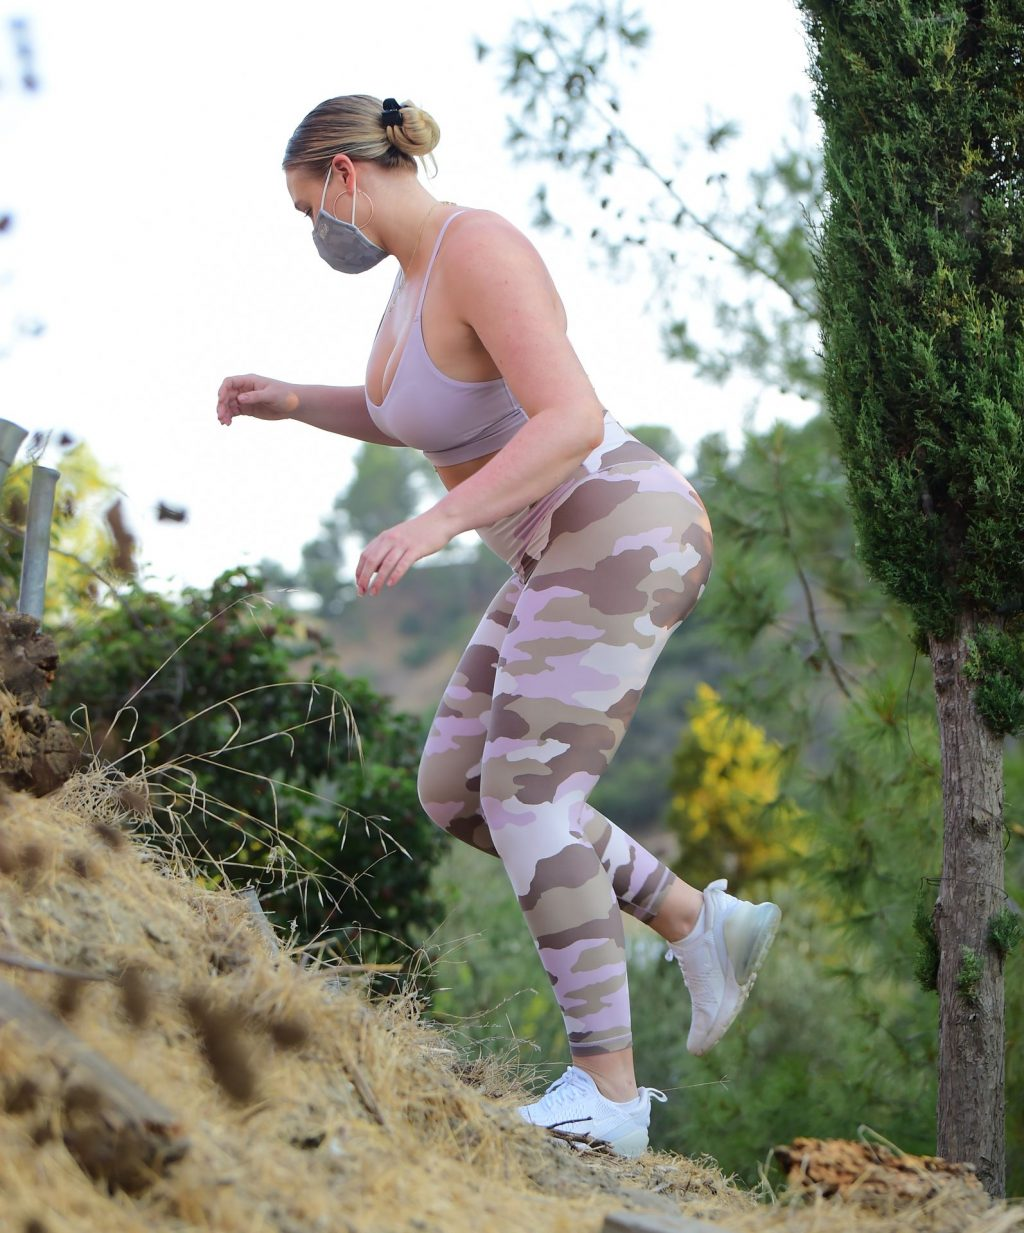 Iskra Lawrence Works Up a Sweat as She Takes a Hike in Los Angeles (36 Photos)